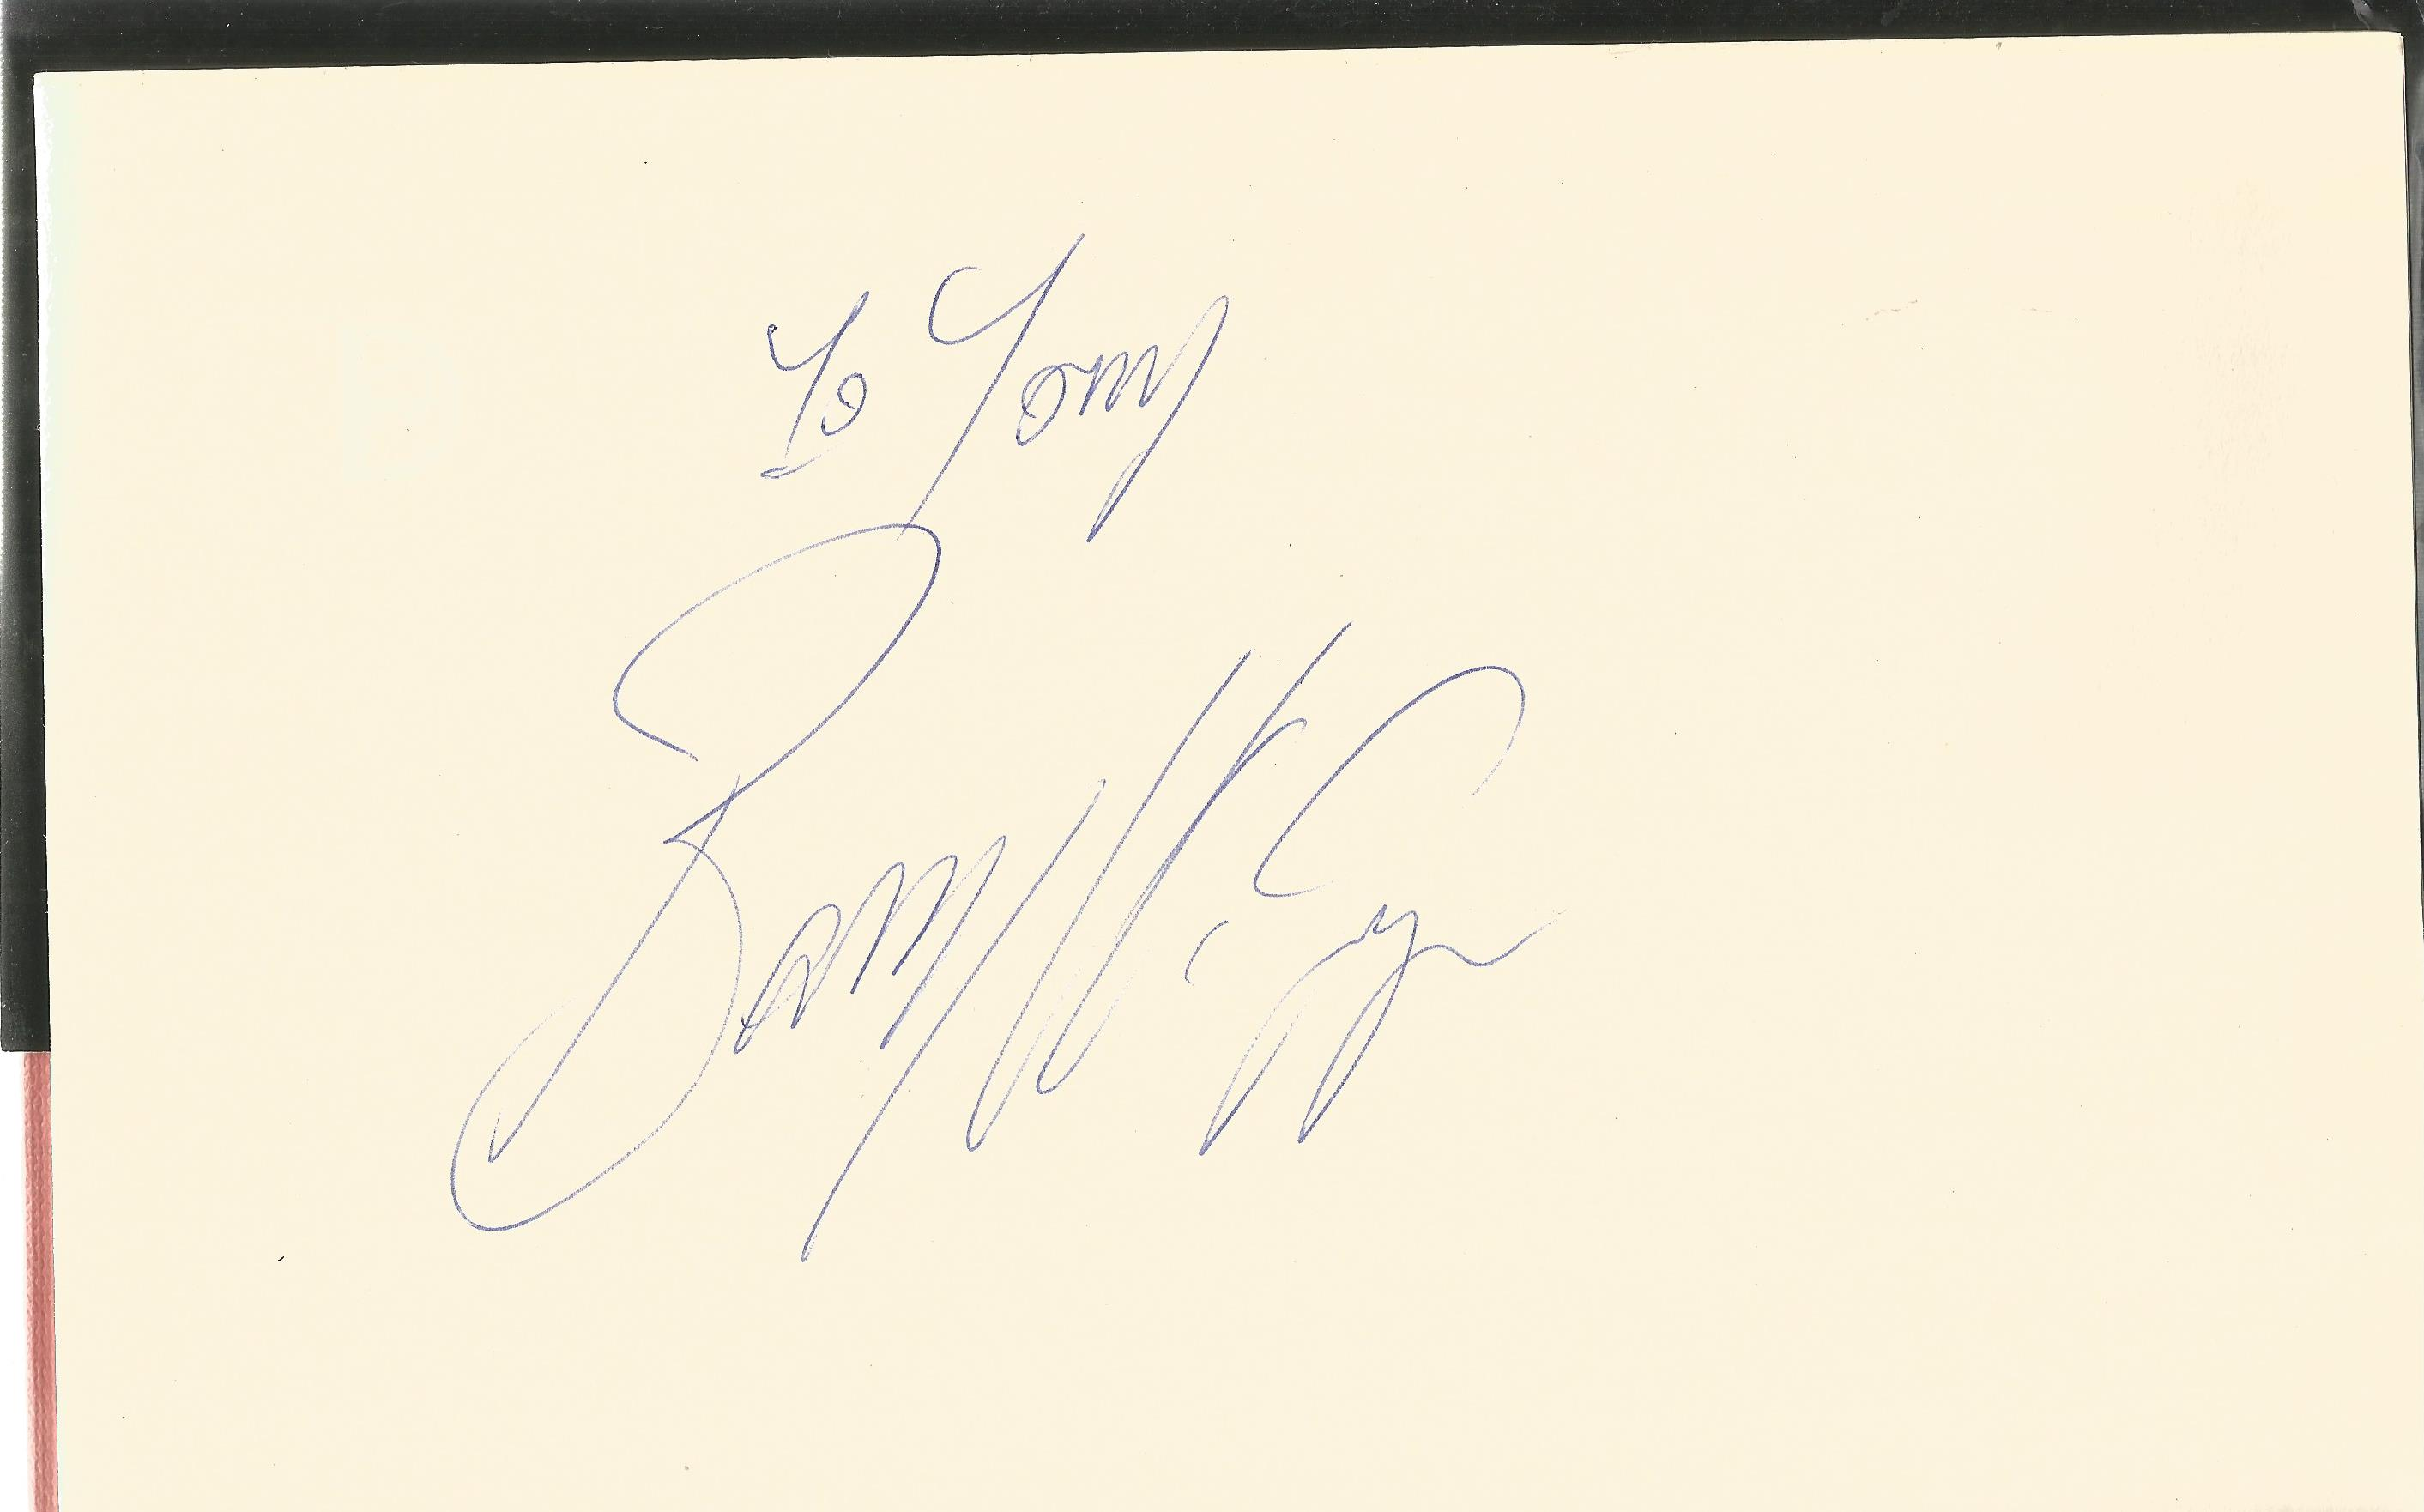 Jim Sheridan Hardback Book Leave the Fighting to McGuigan 1985 signed opposite the Title Page by - Image 2 of 2